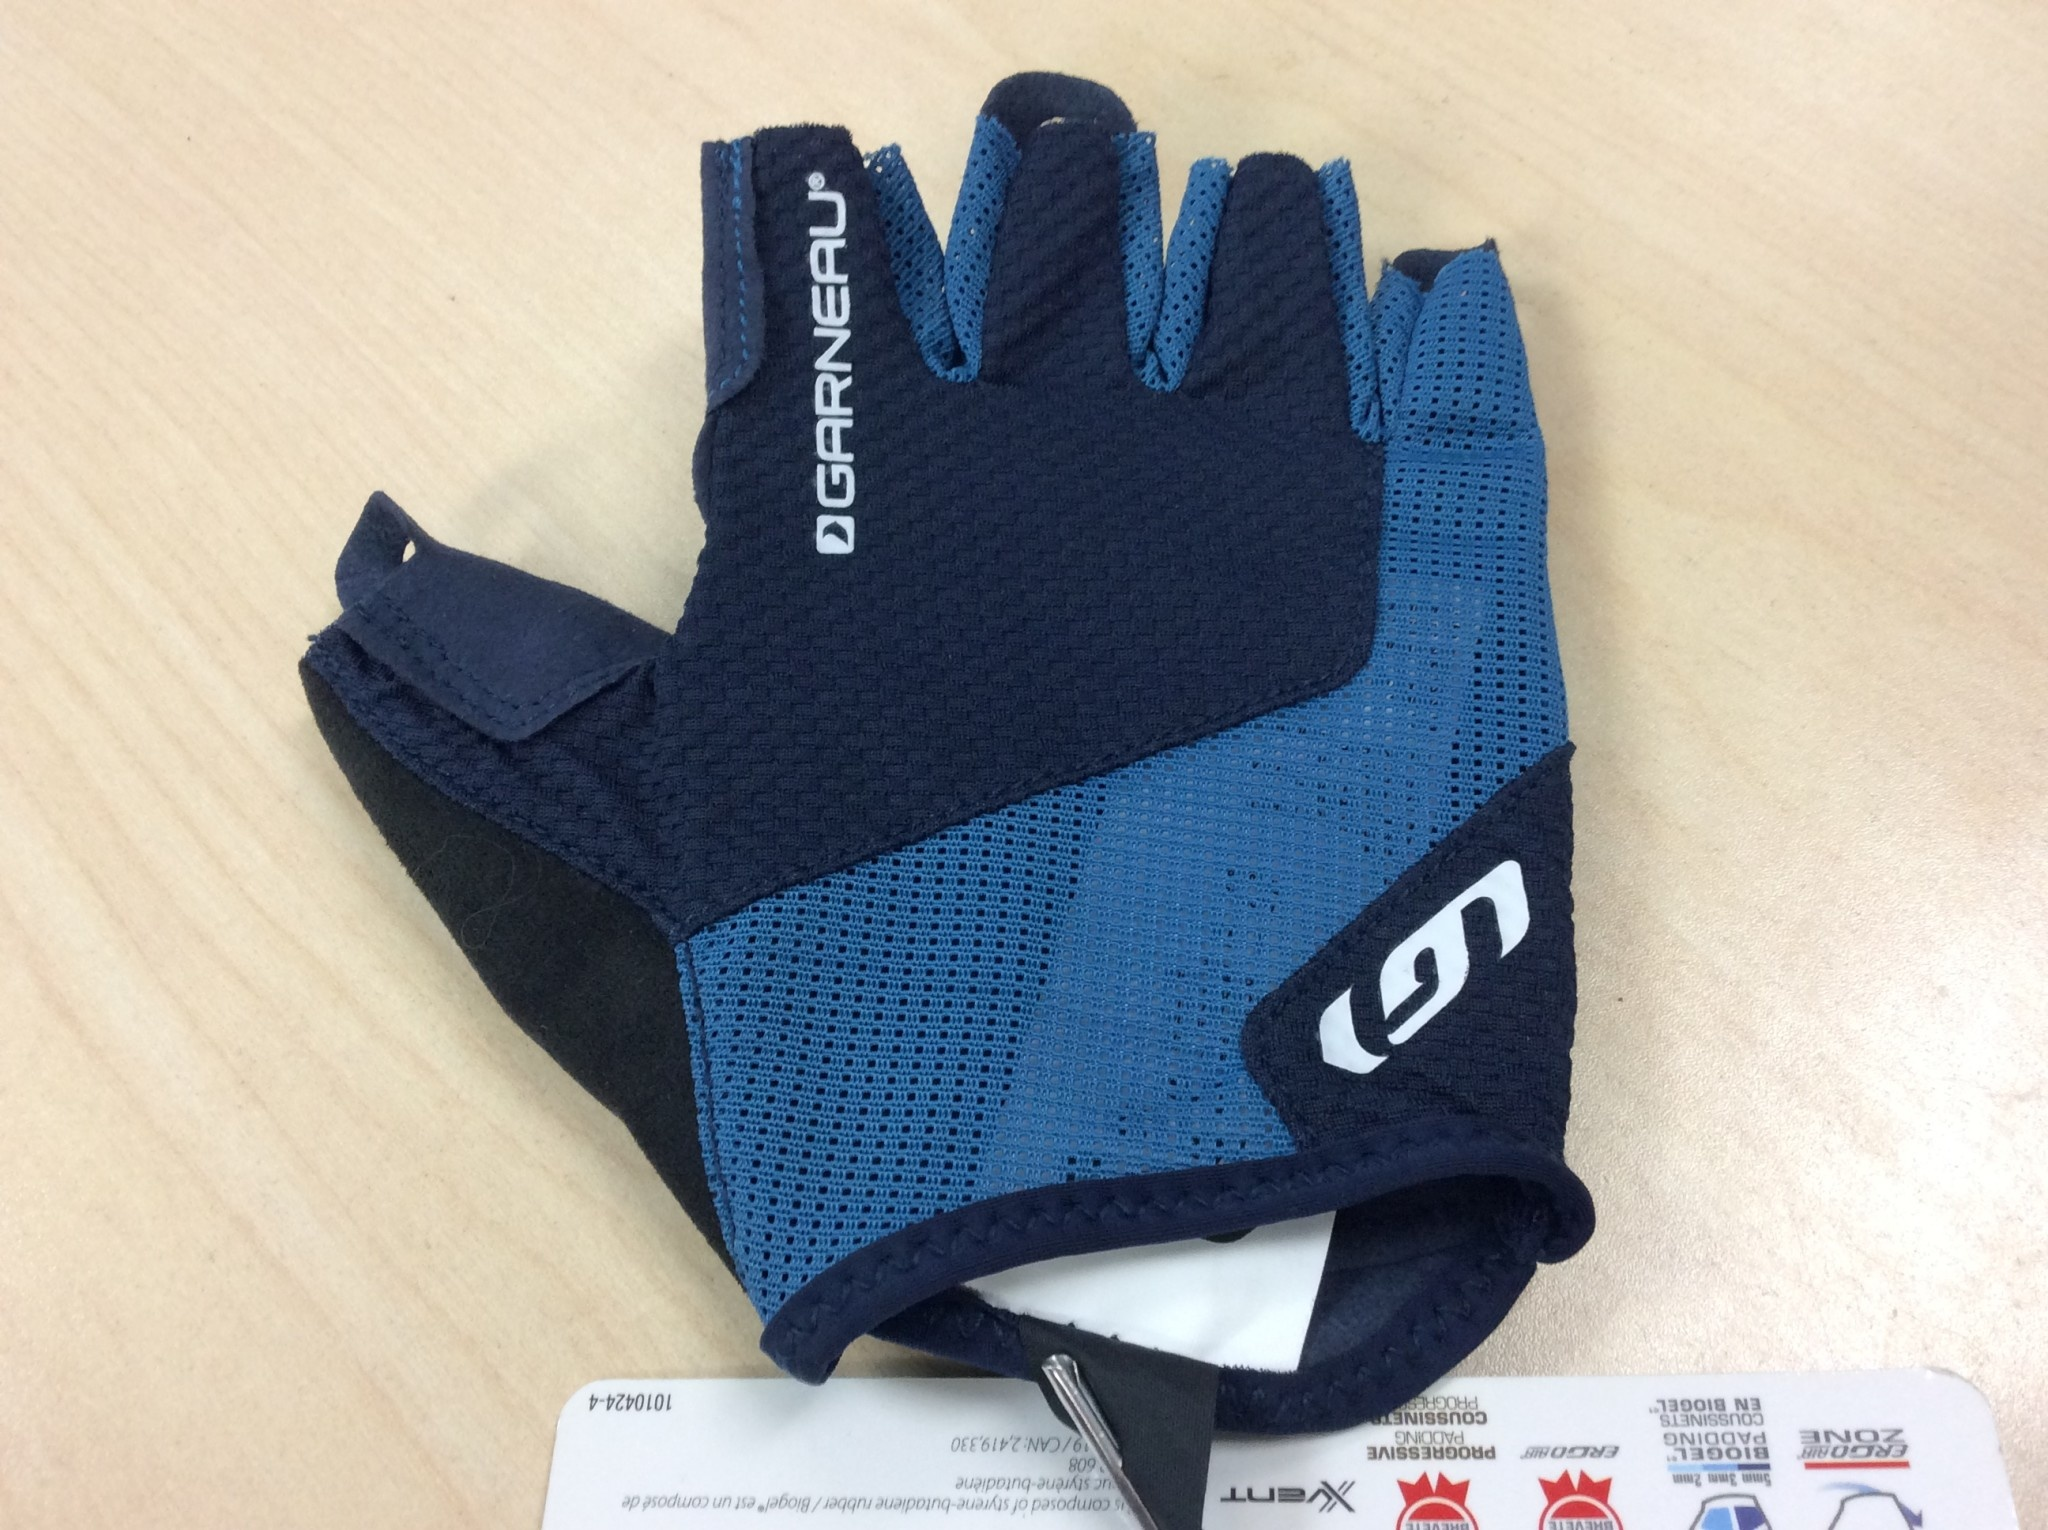 GARNEAU NIMBUS EVO CYCLING GLOVES DARK NIGHT M